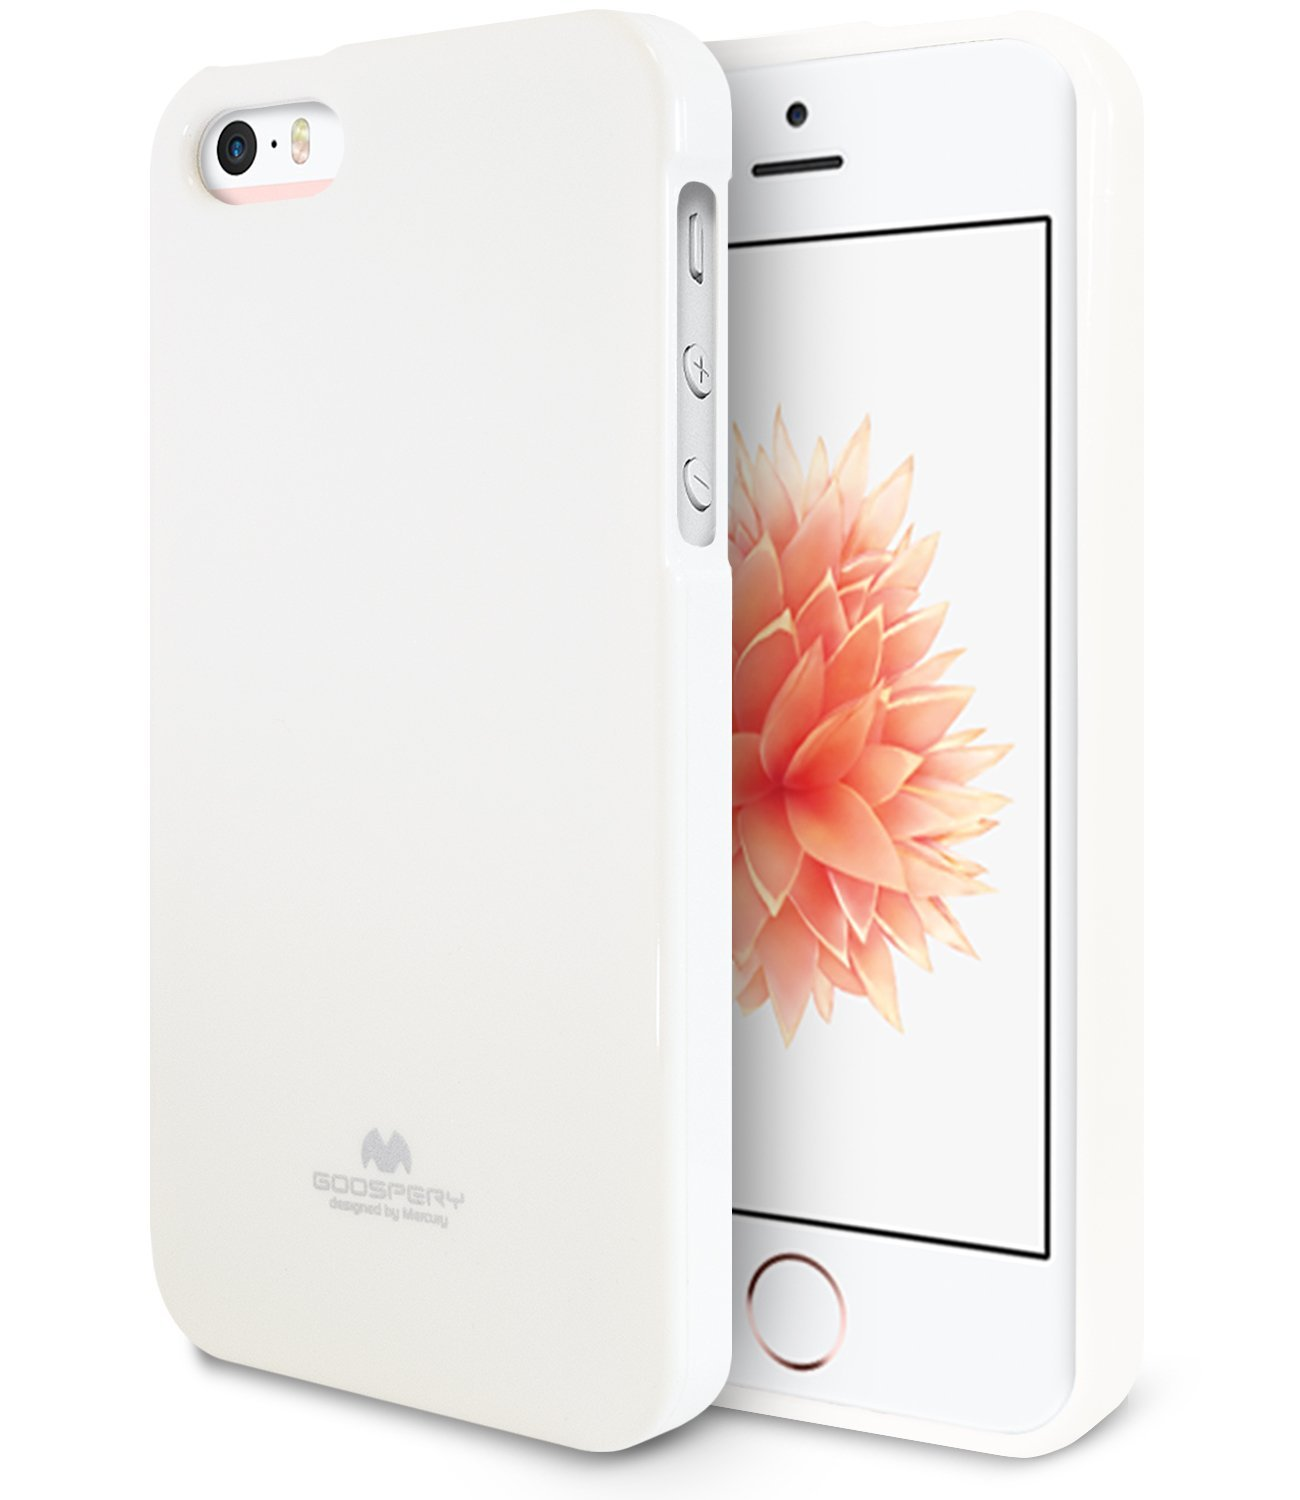 Pouzdro / kryt pro Apple iPhone 5 / 5S / SE - Mercury, Jelly Case White